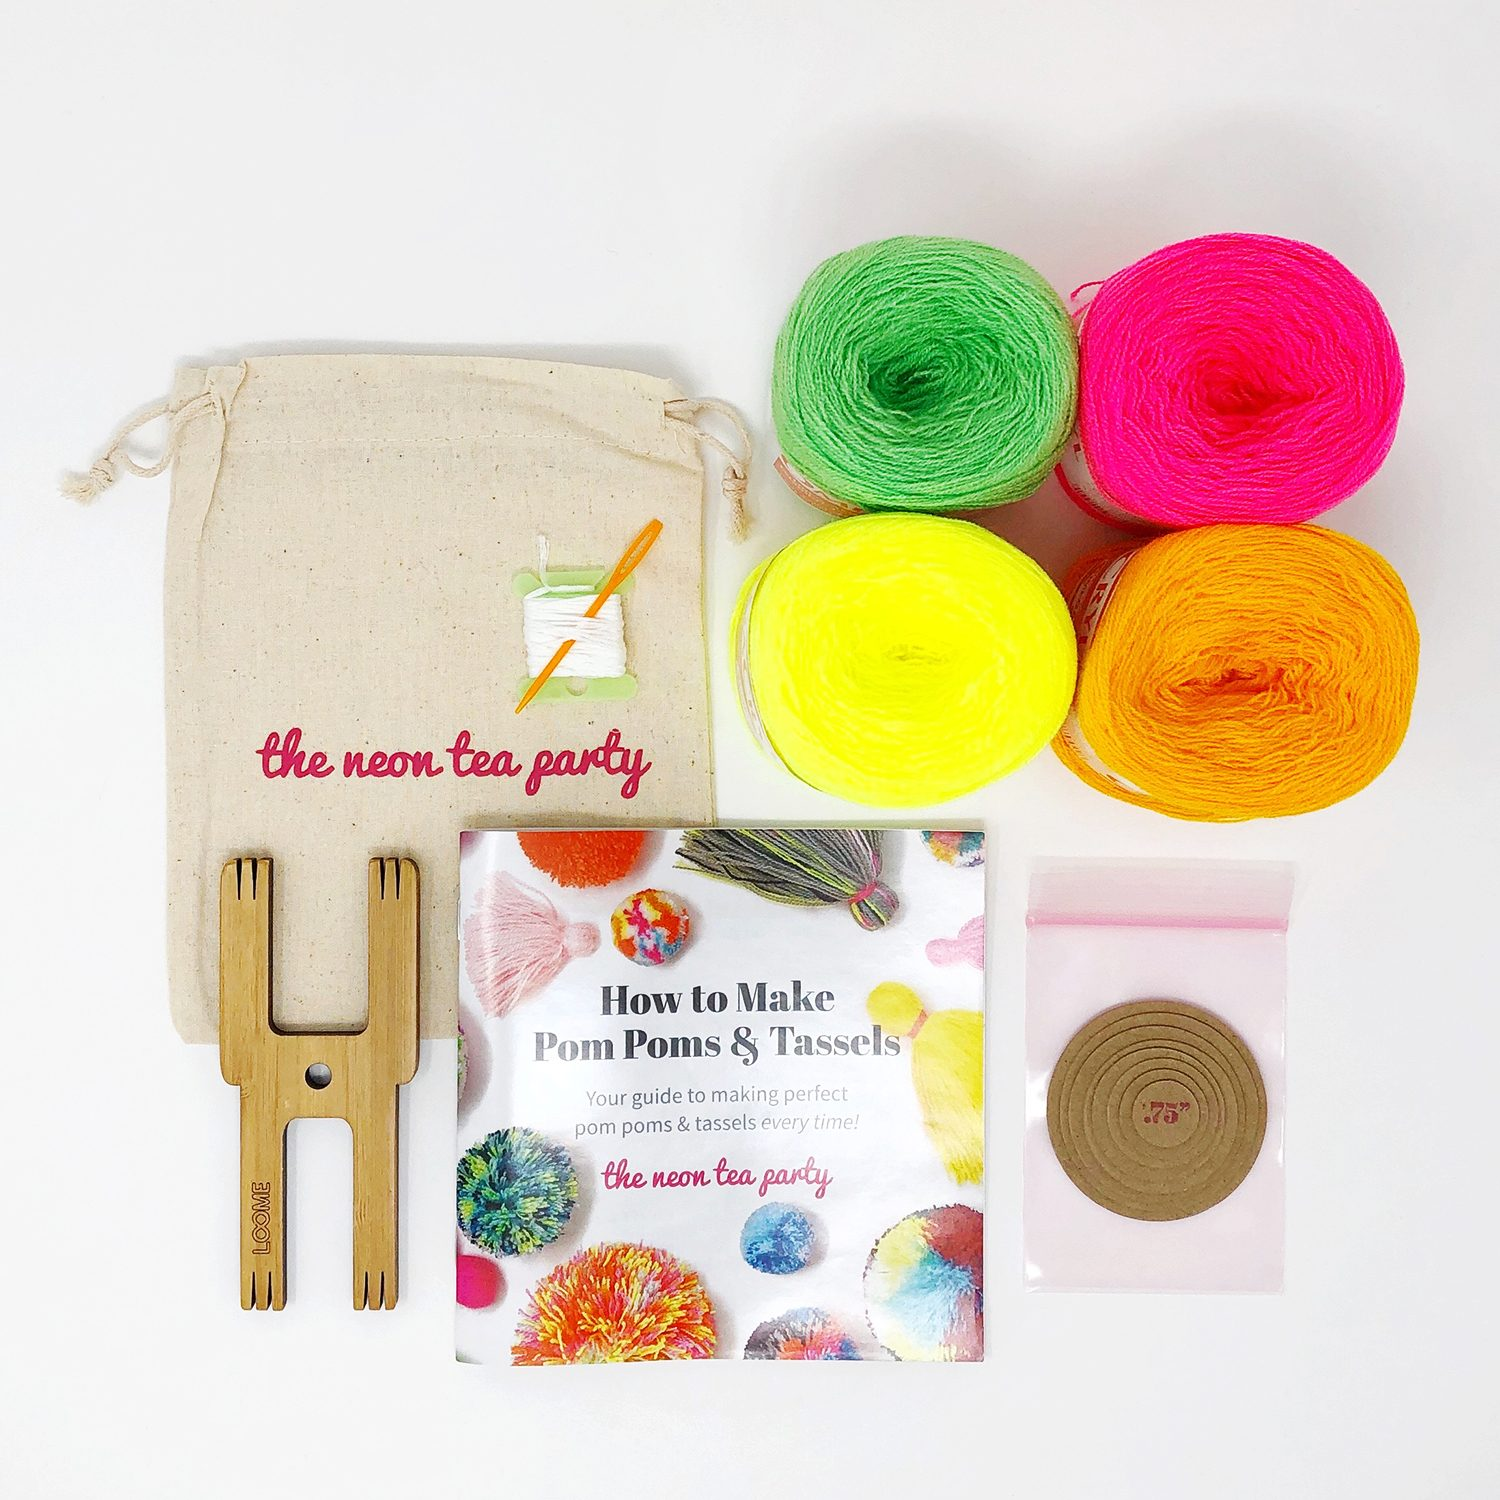 Pom Pom and Tassel Kit - Starter - The Neon Tea Party